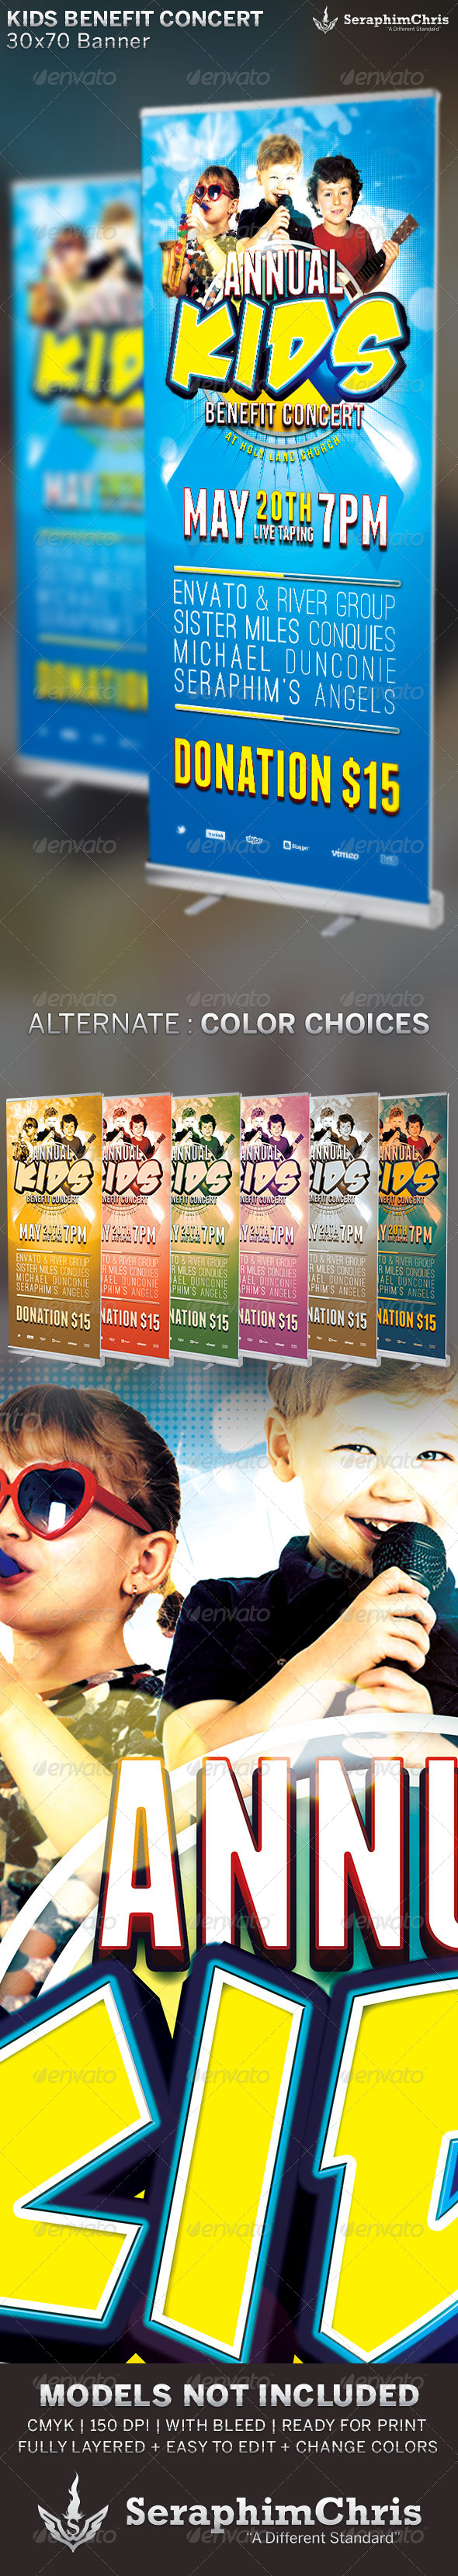 Kids Benefit Concert: Church Banner Template - Signage Print Templates